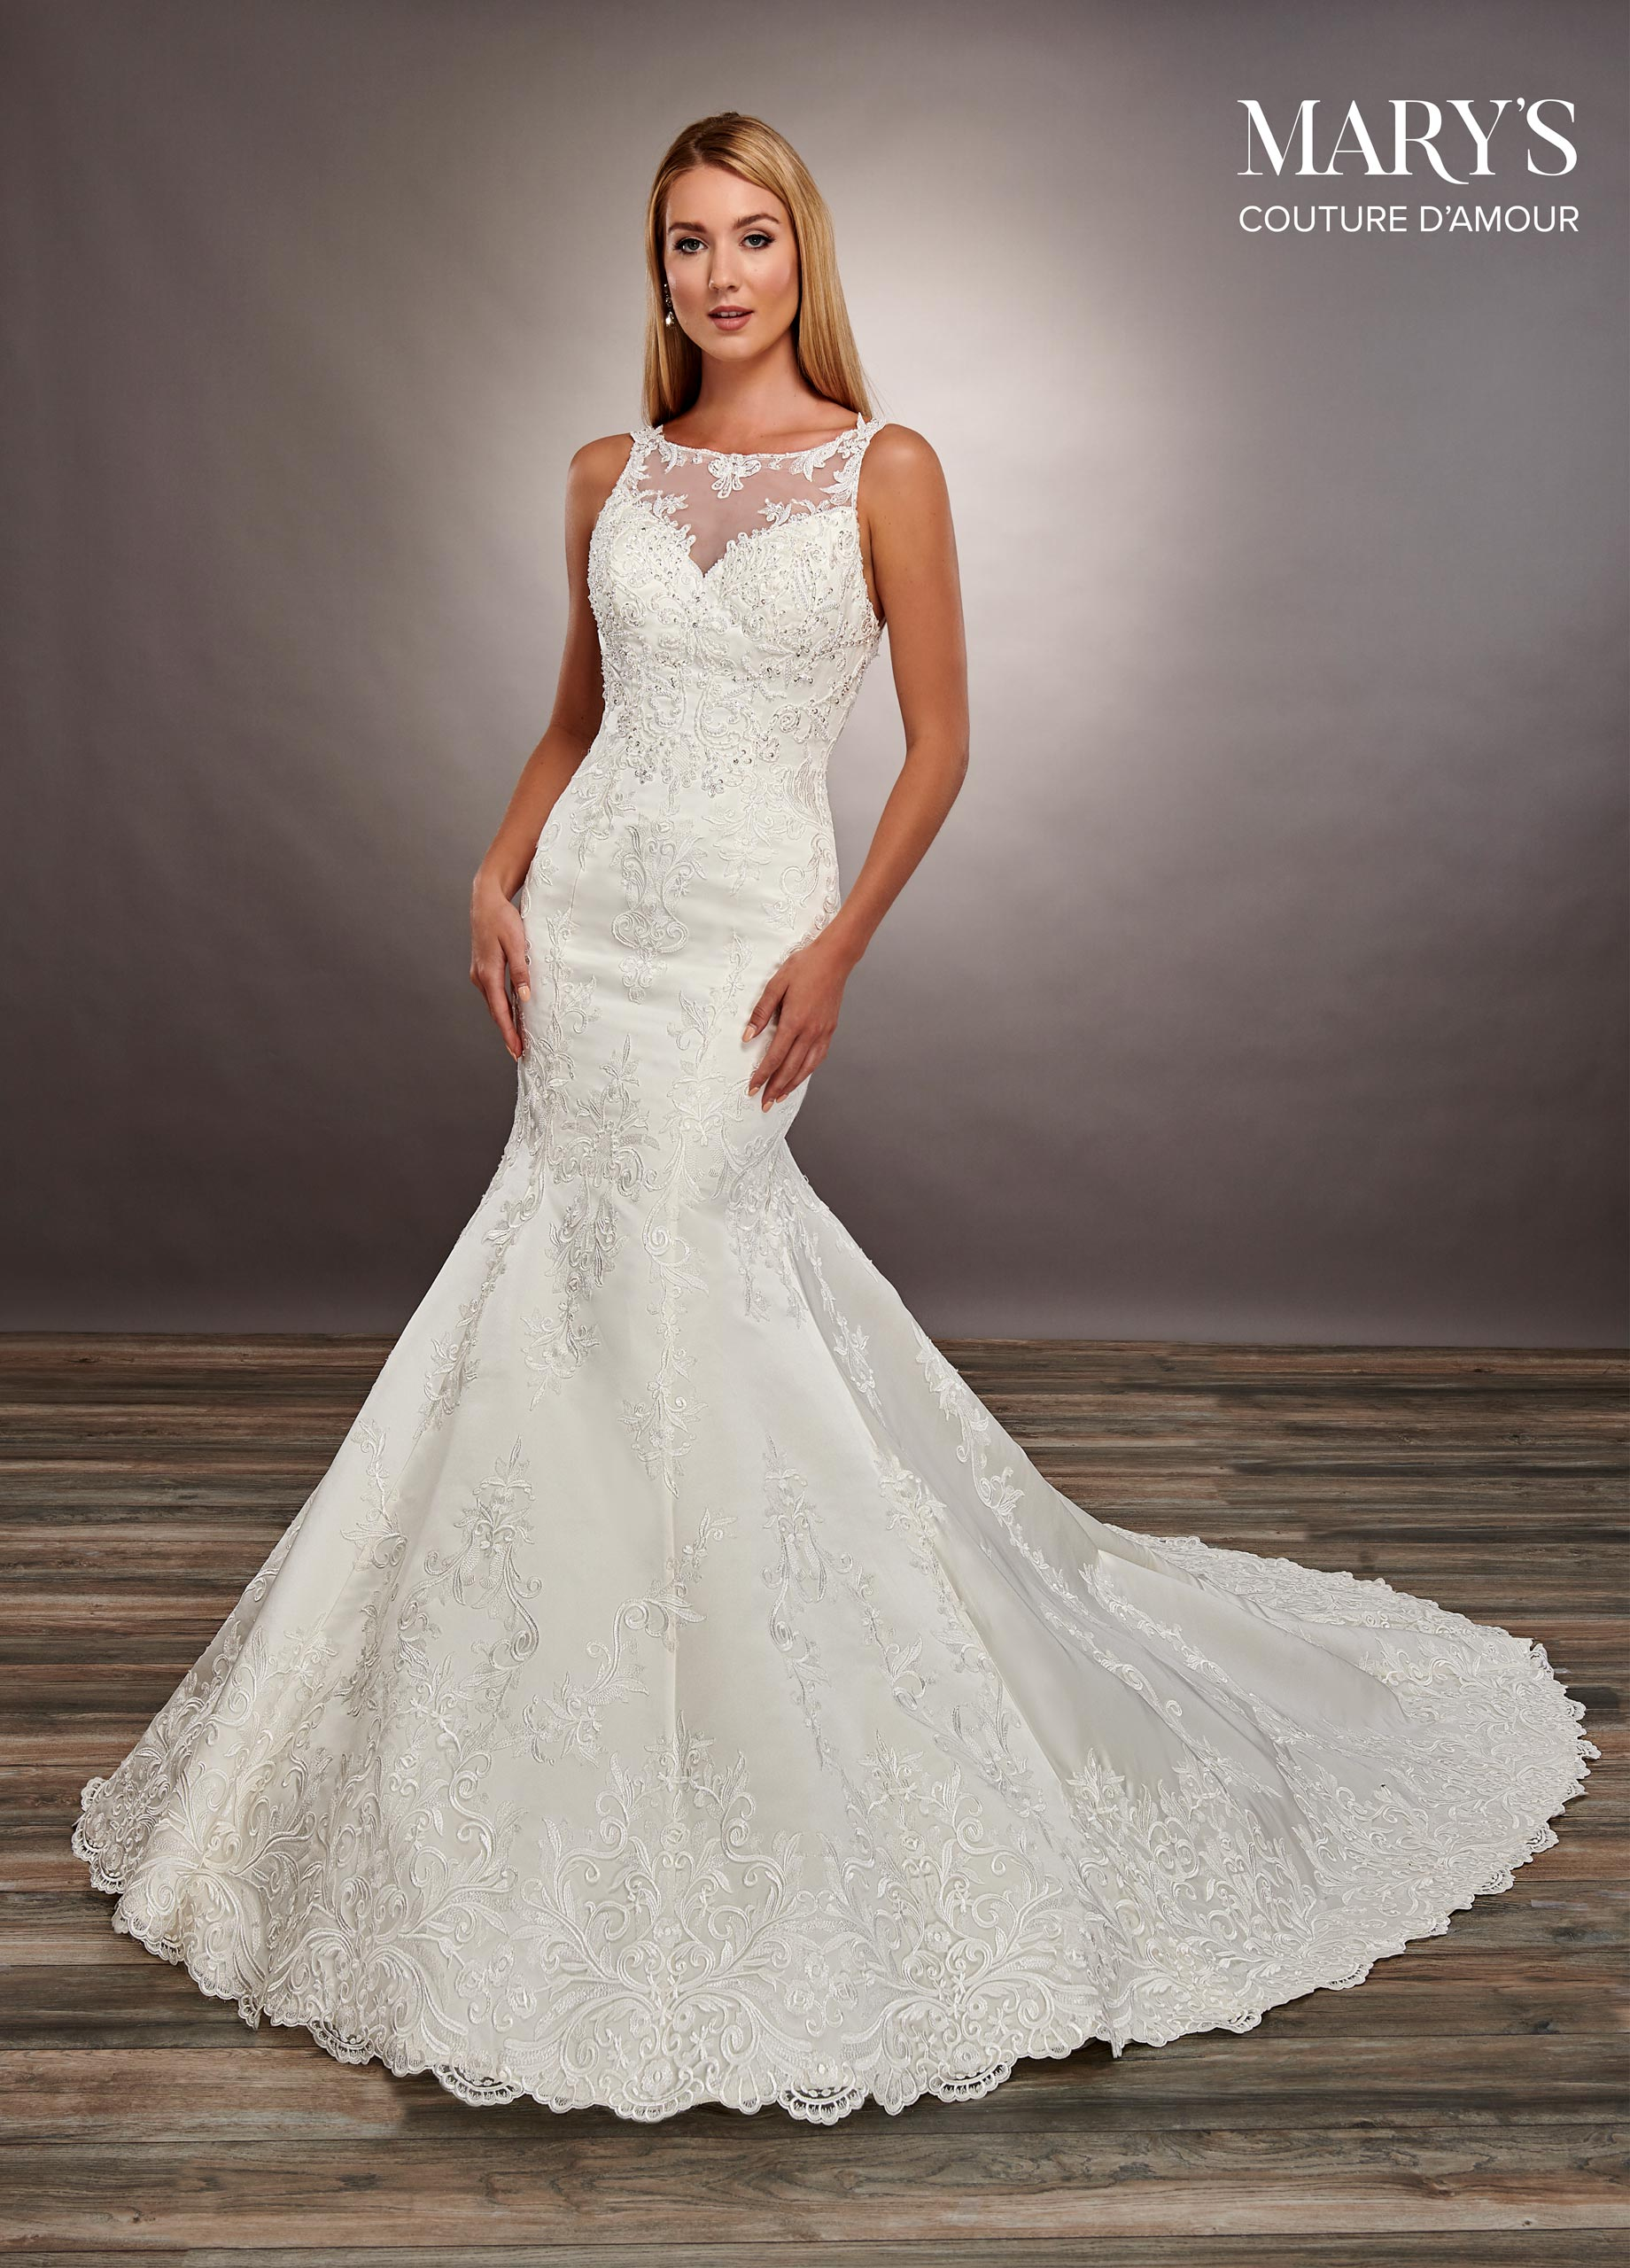 Couture Damour Bridal Dresses   Couture d'Amour   Style - MB4083